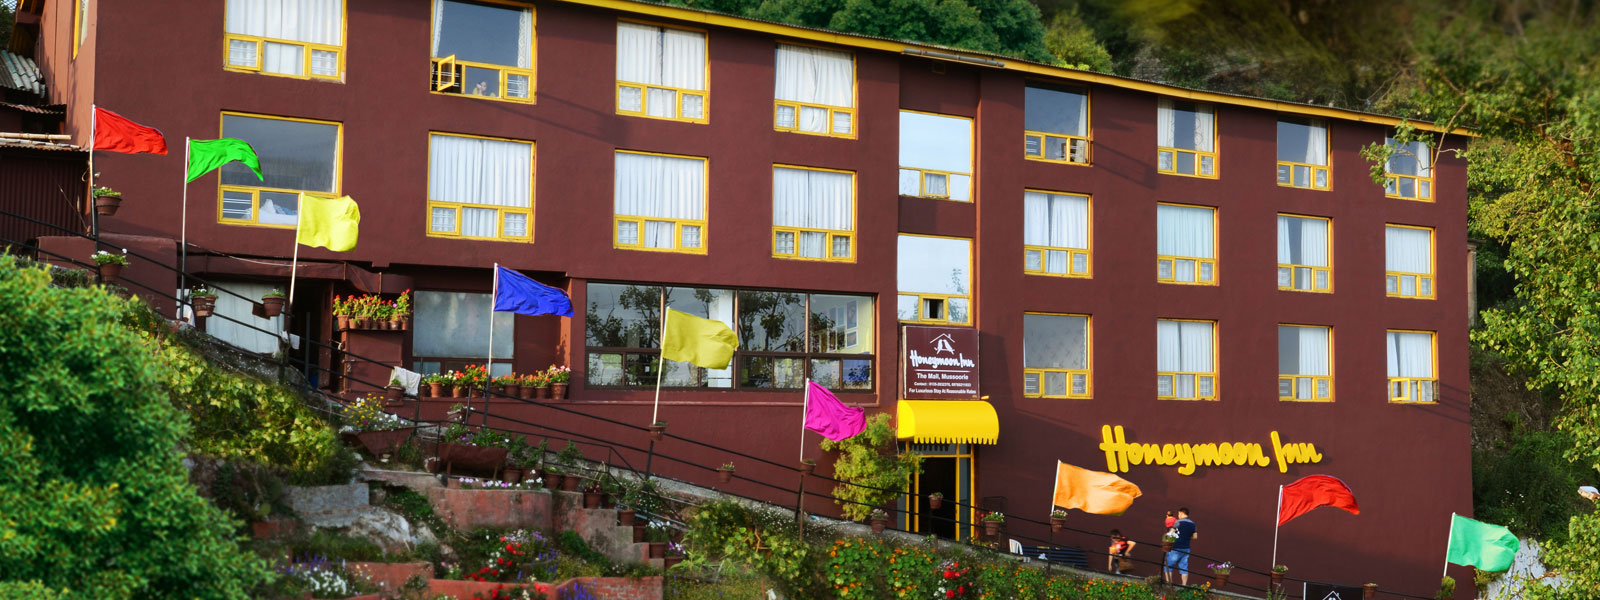 Honeymoon inn Mussoorie - best hotels in mussoorie